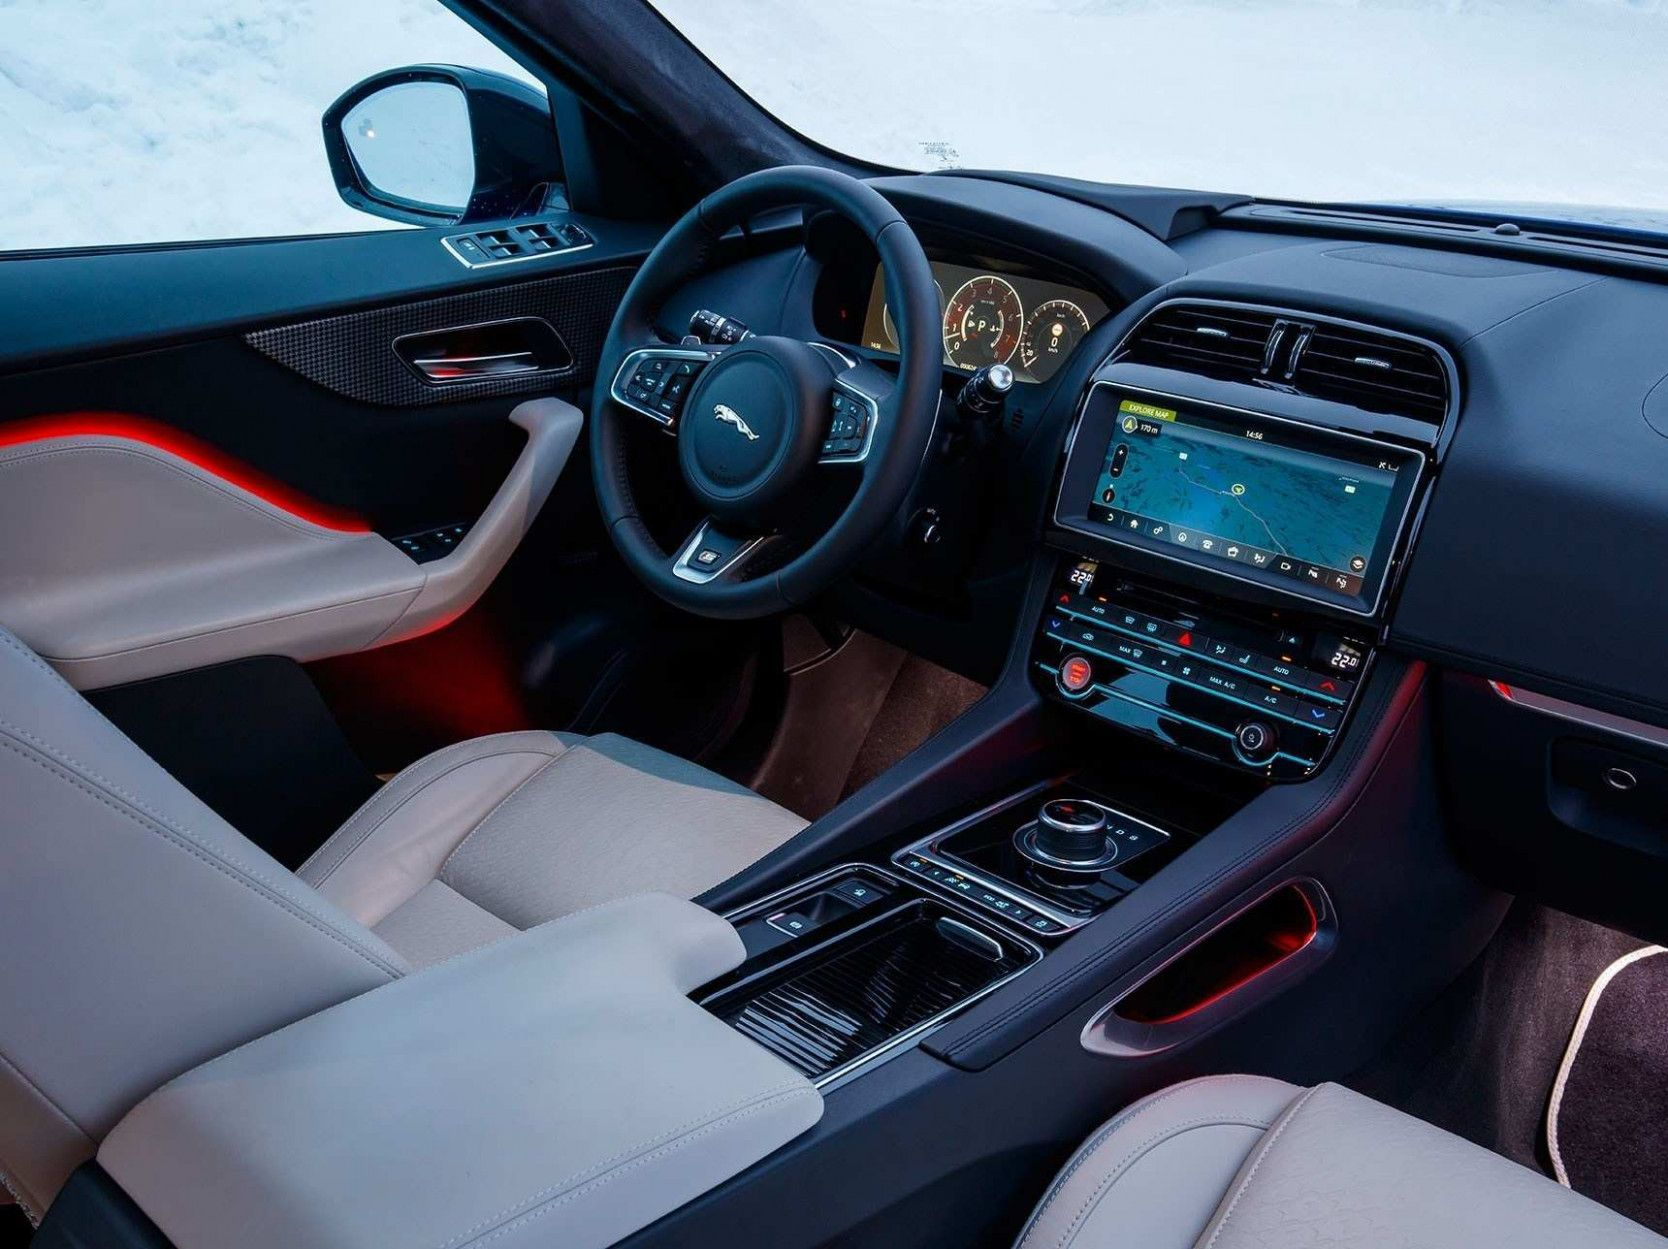 2020 Jaguar F Pace Interior Reviews 2020 Car Reviews Jaguar Suv Jaguar Suv Interior New Luxury Cars